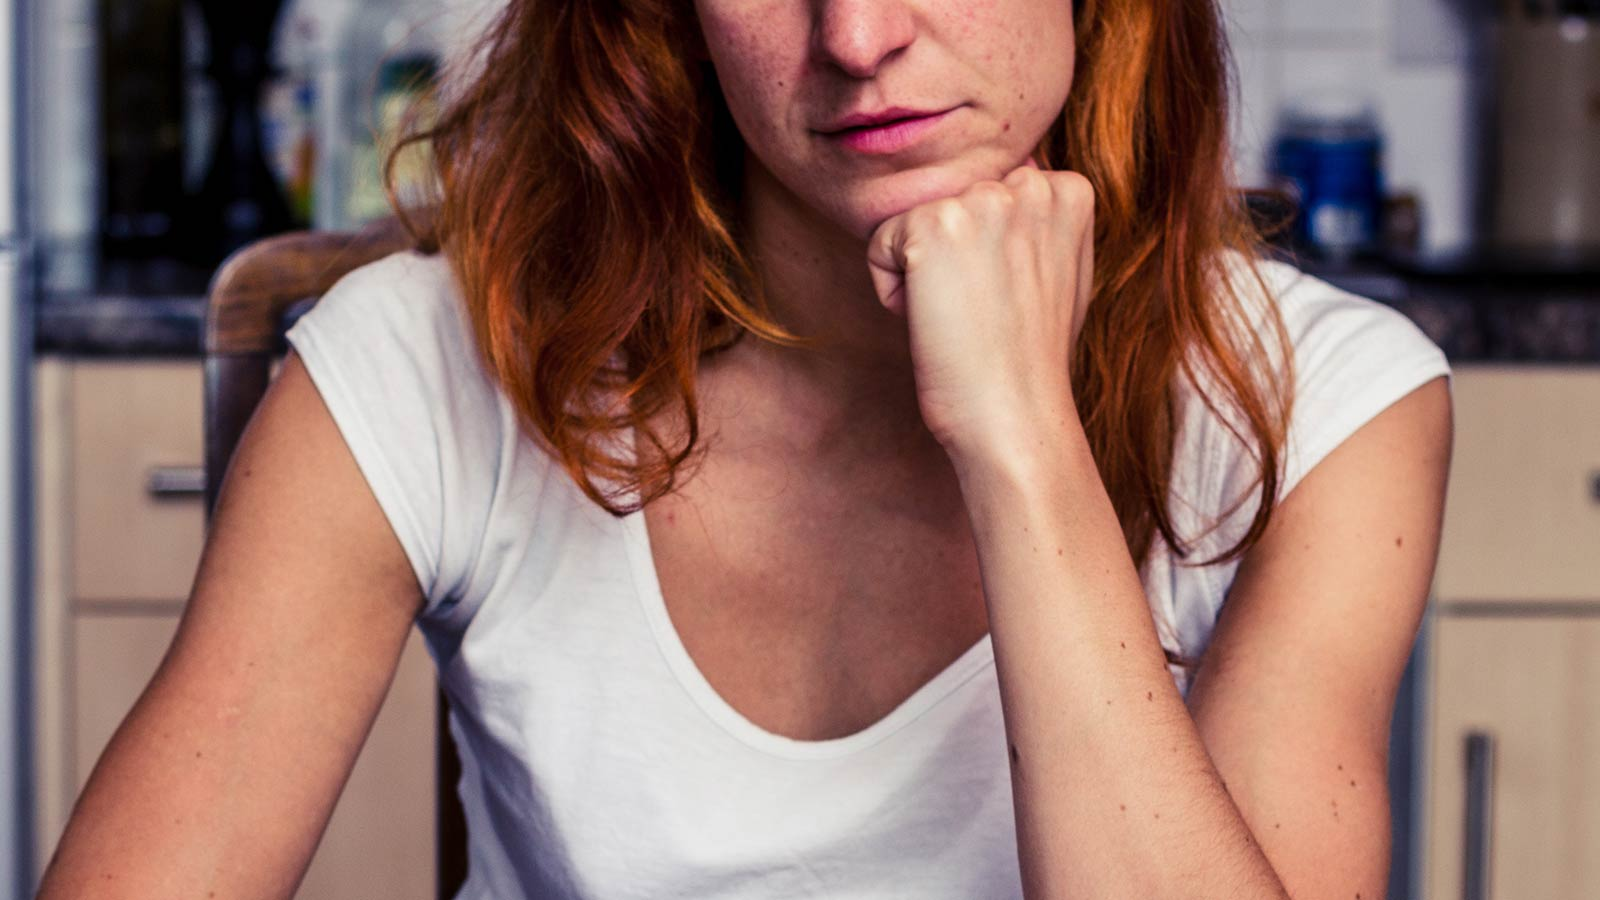 Half a woman's face, as she sits at a kitchen table, resting her chin on her hand.